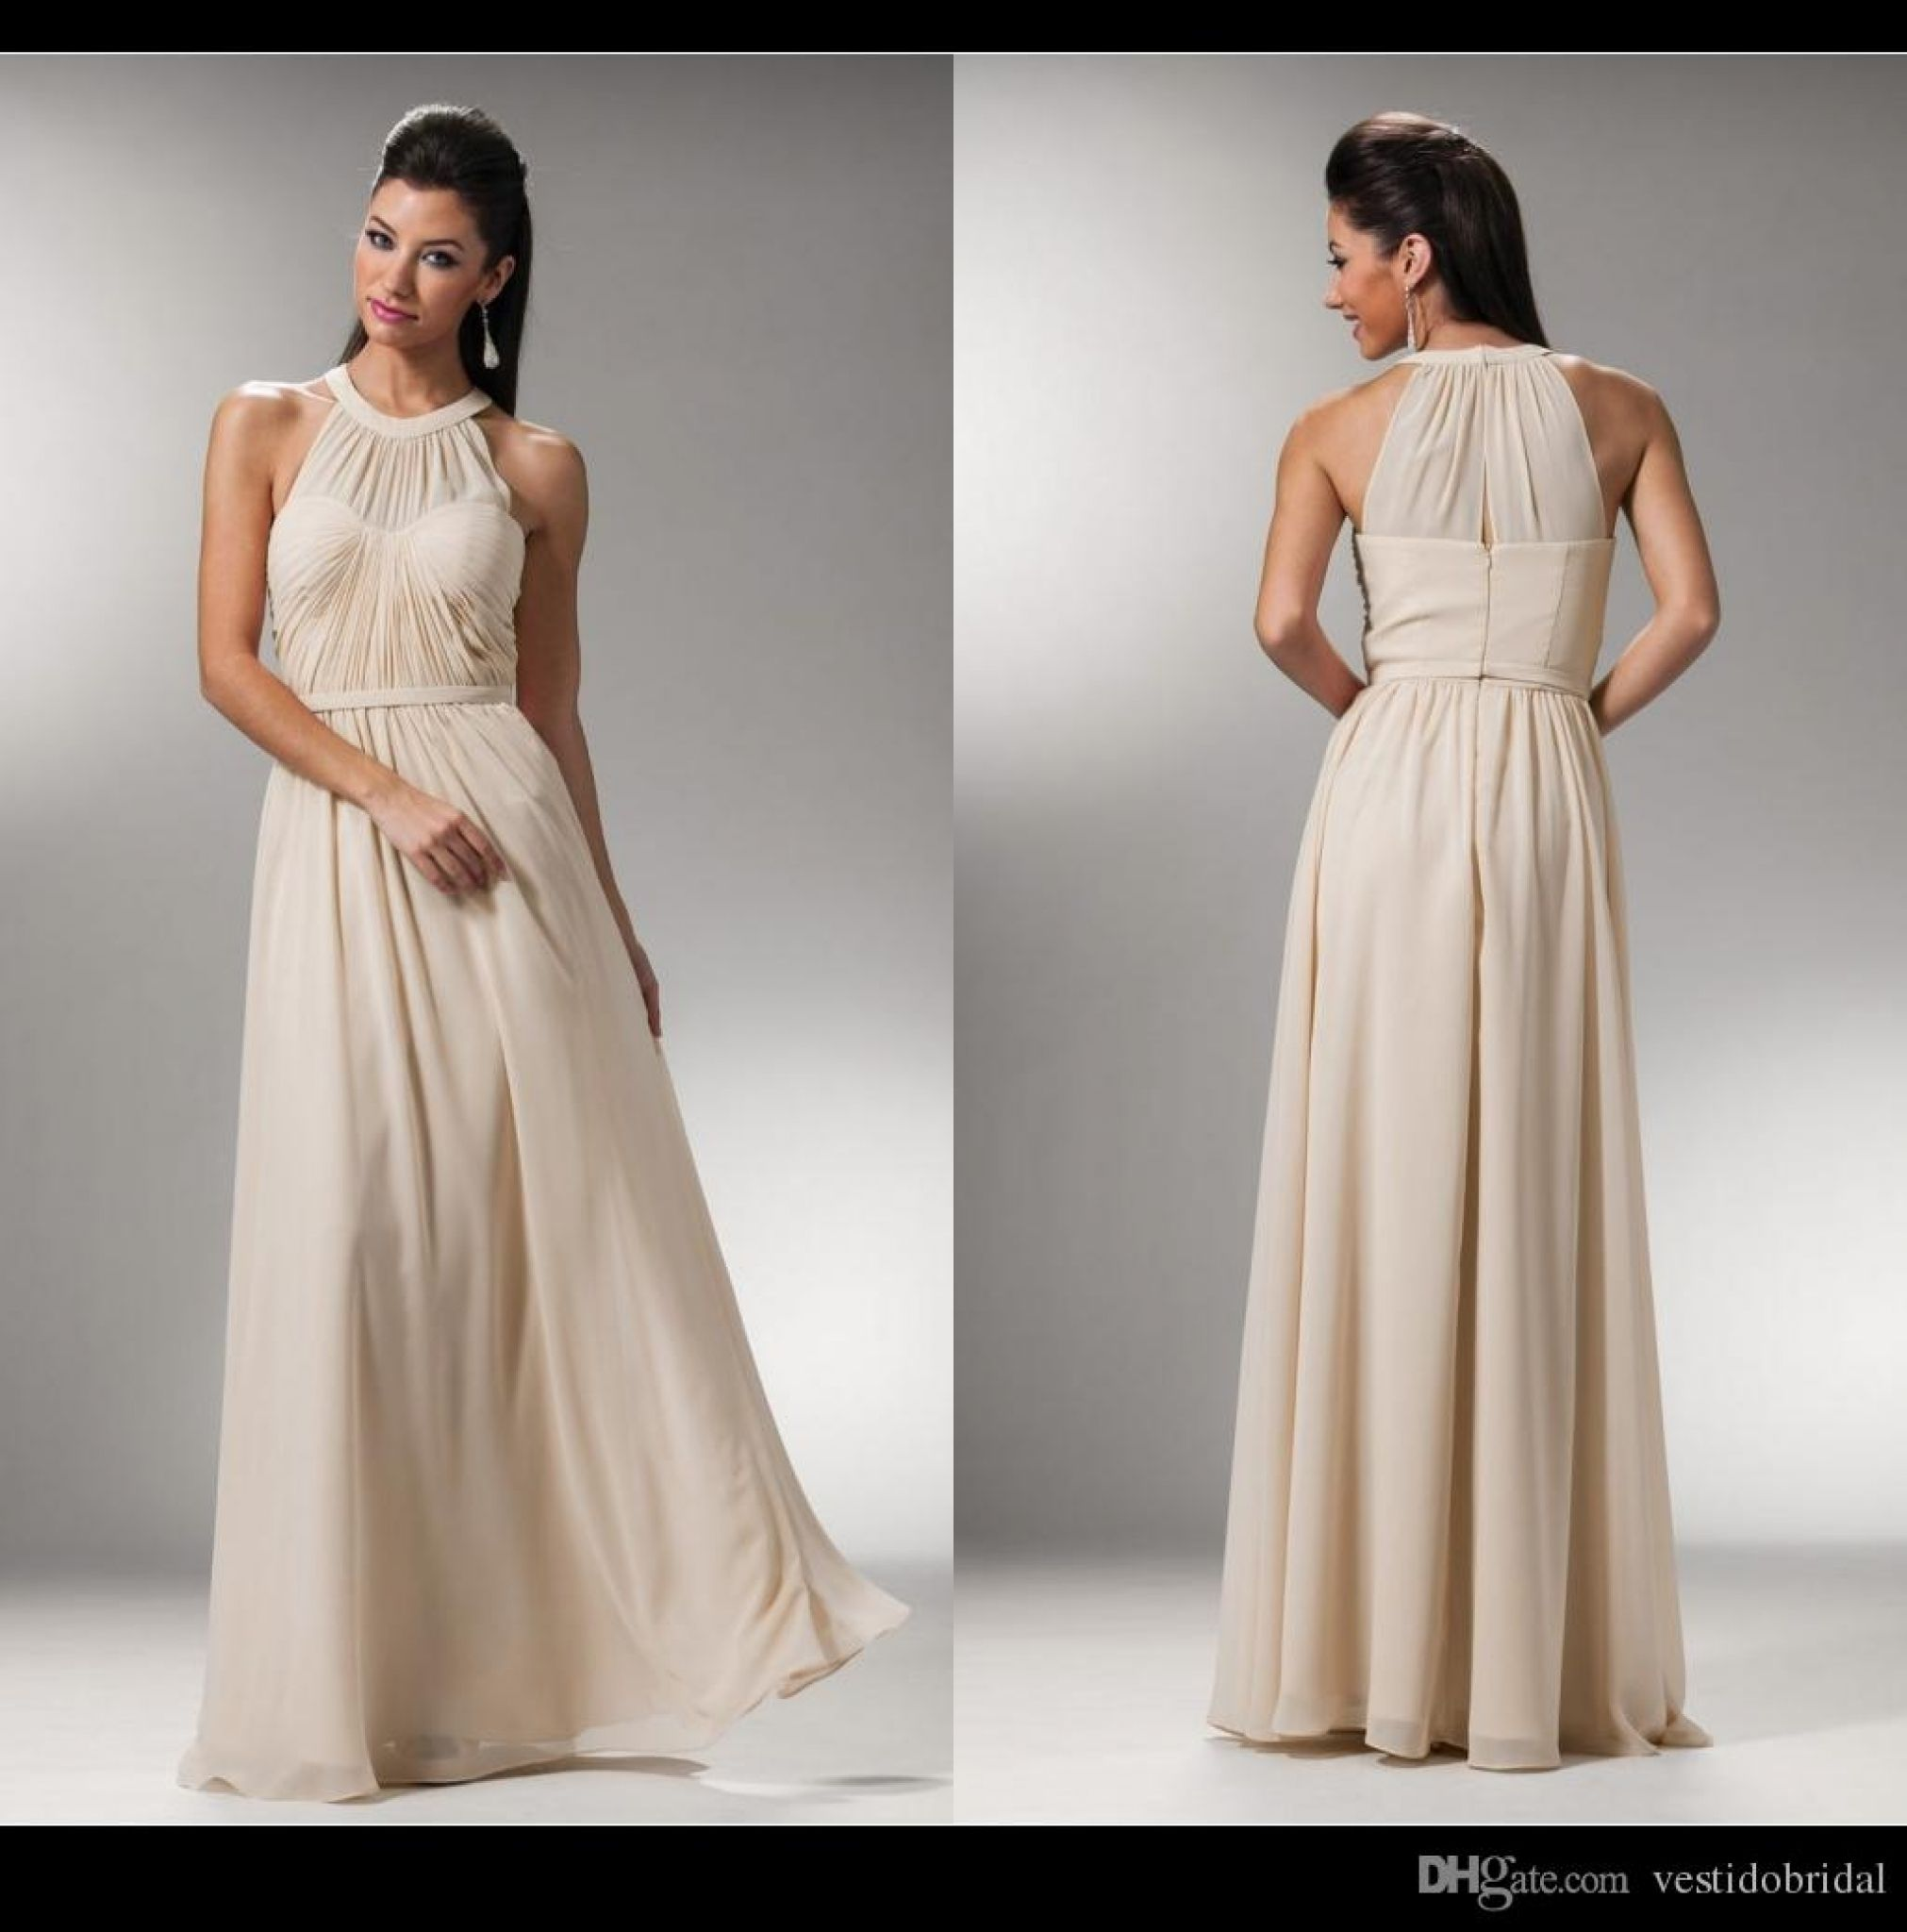 Best wedding dresses aliexpress  simple halter wedding dresses  dresses for guest at wedding Check